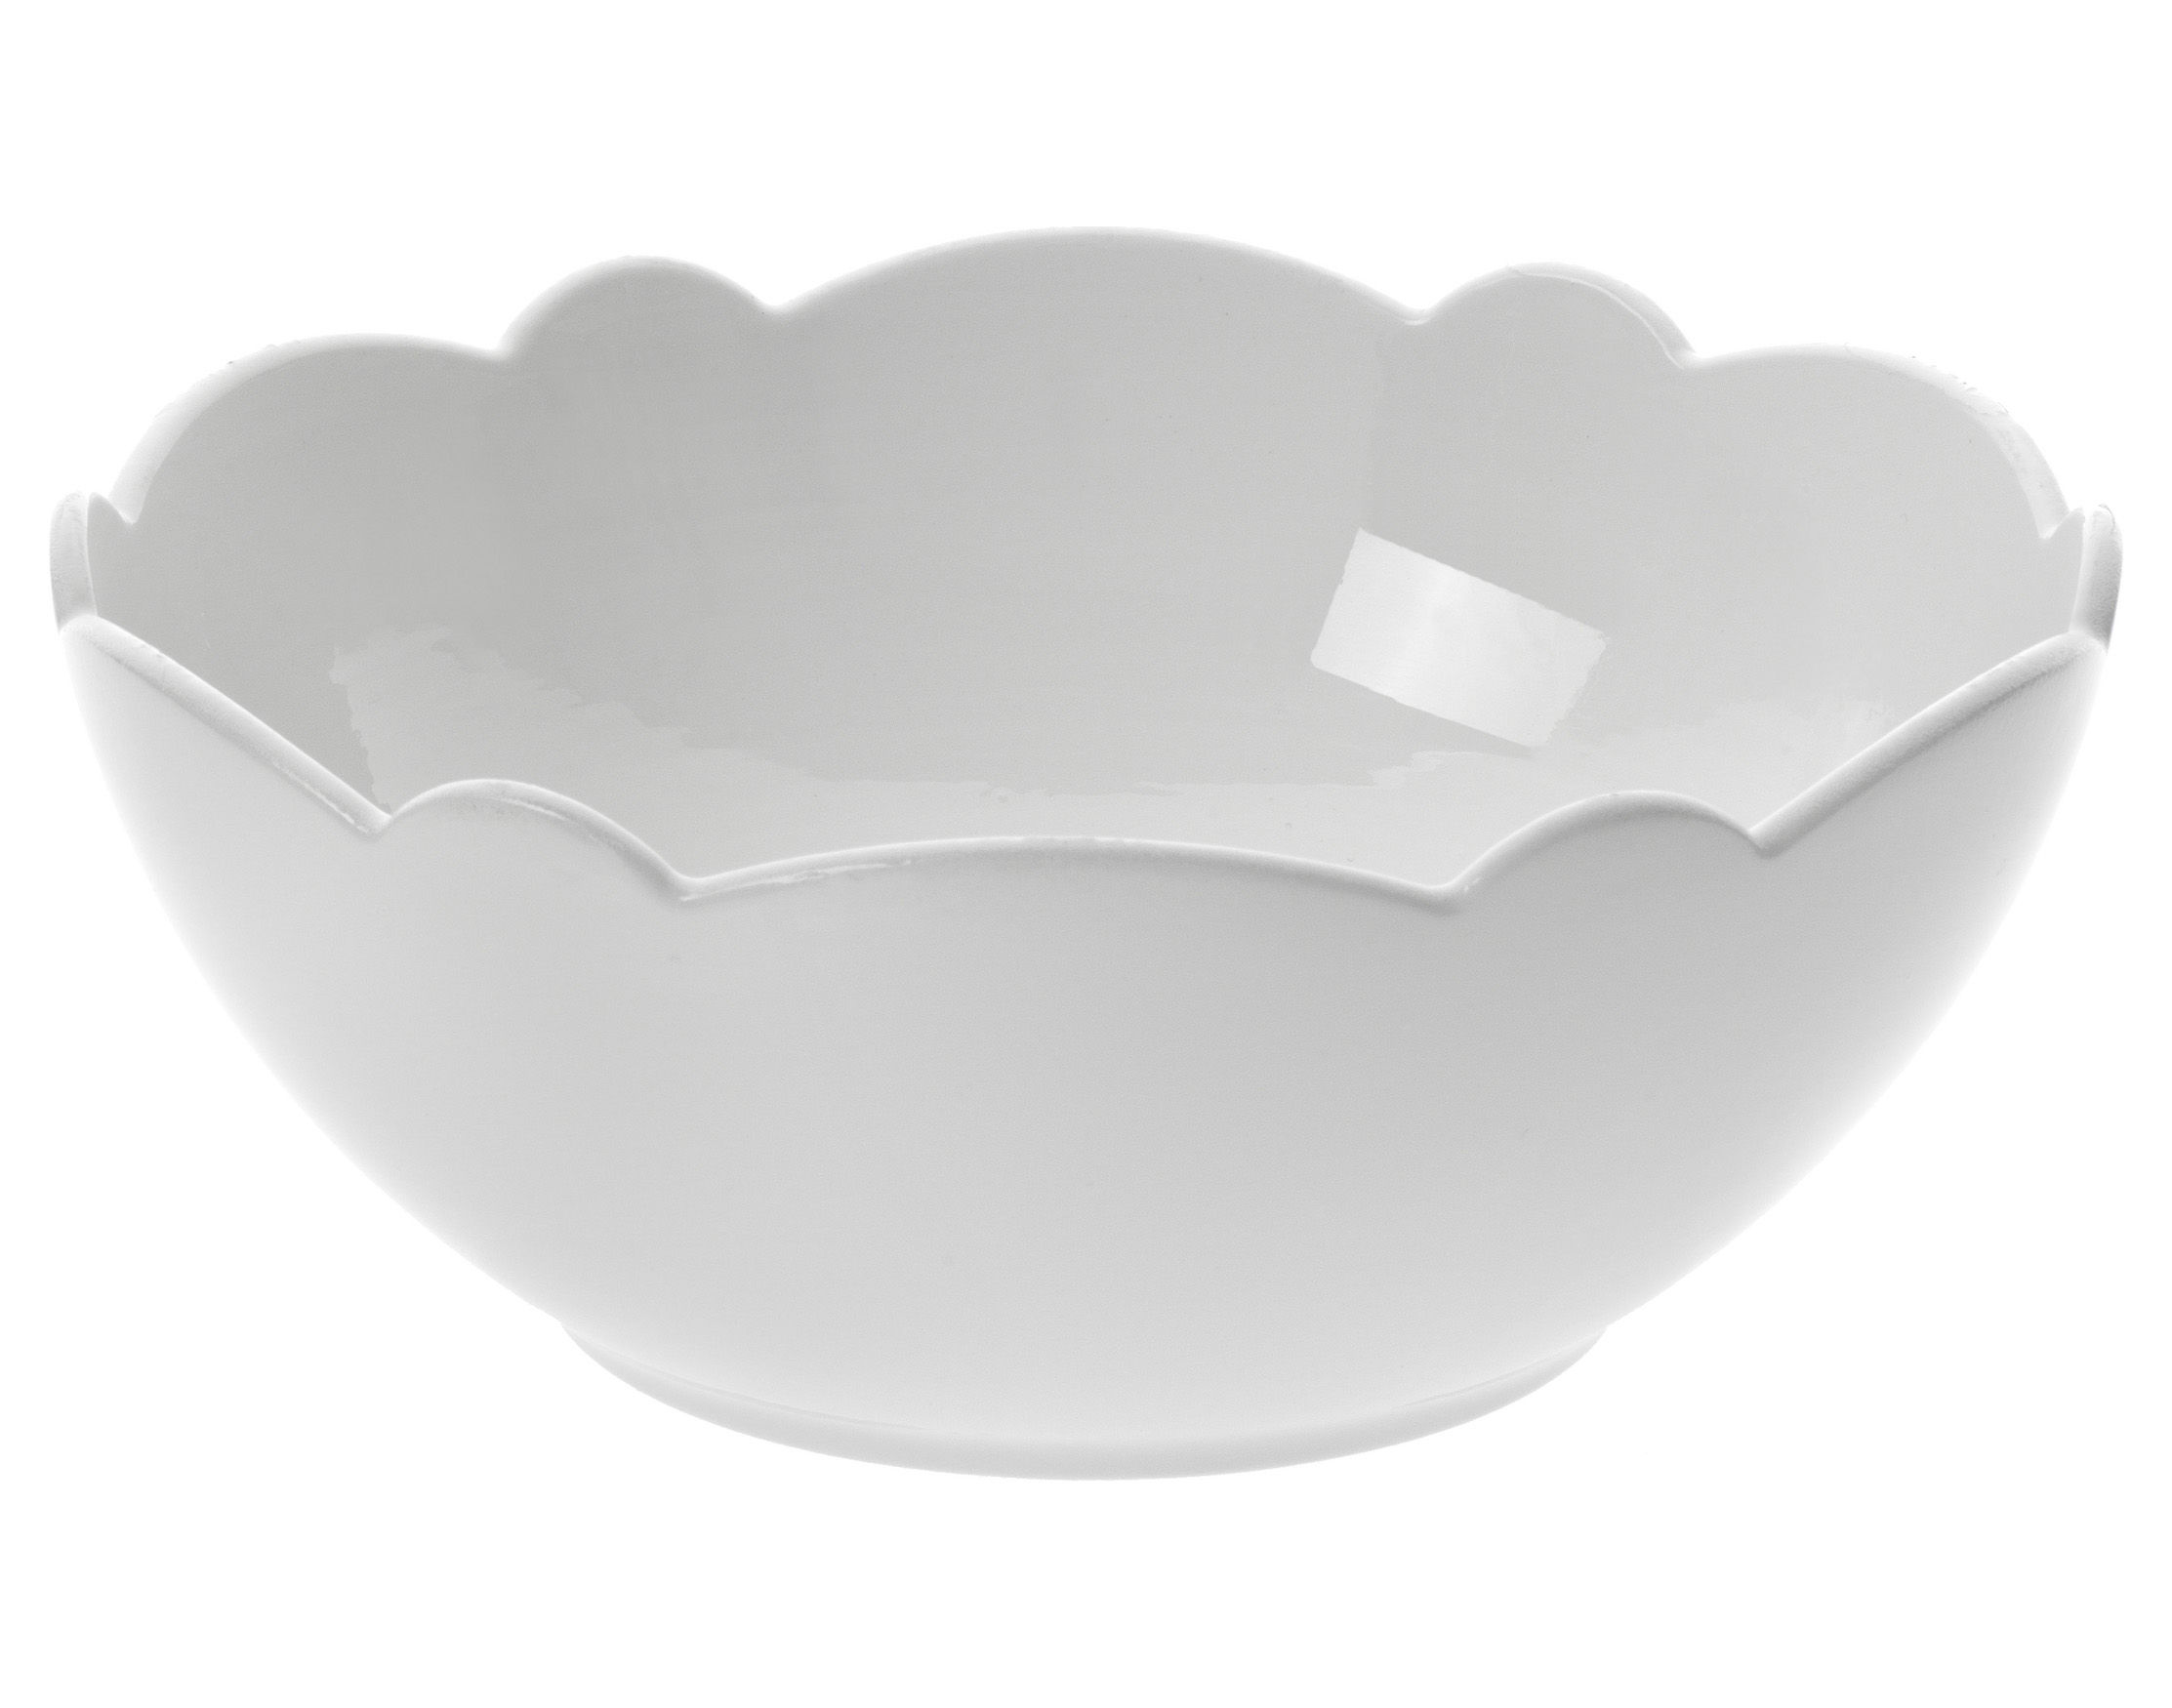 Tableware - Bowls - Dressed Bowl - Ø 15 cm by Alessi - White - China